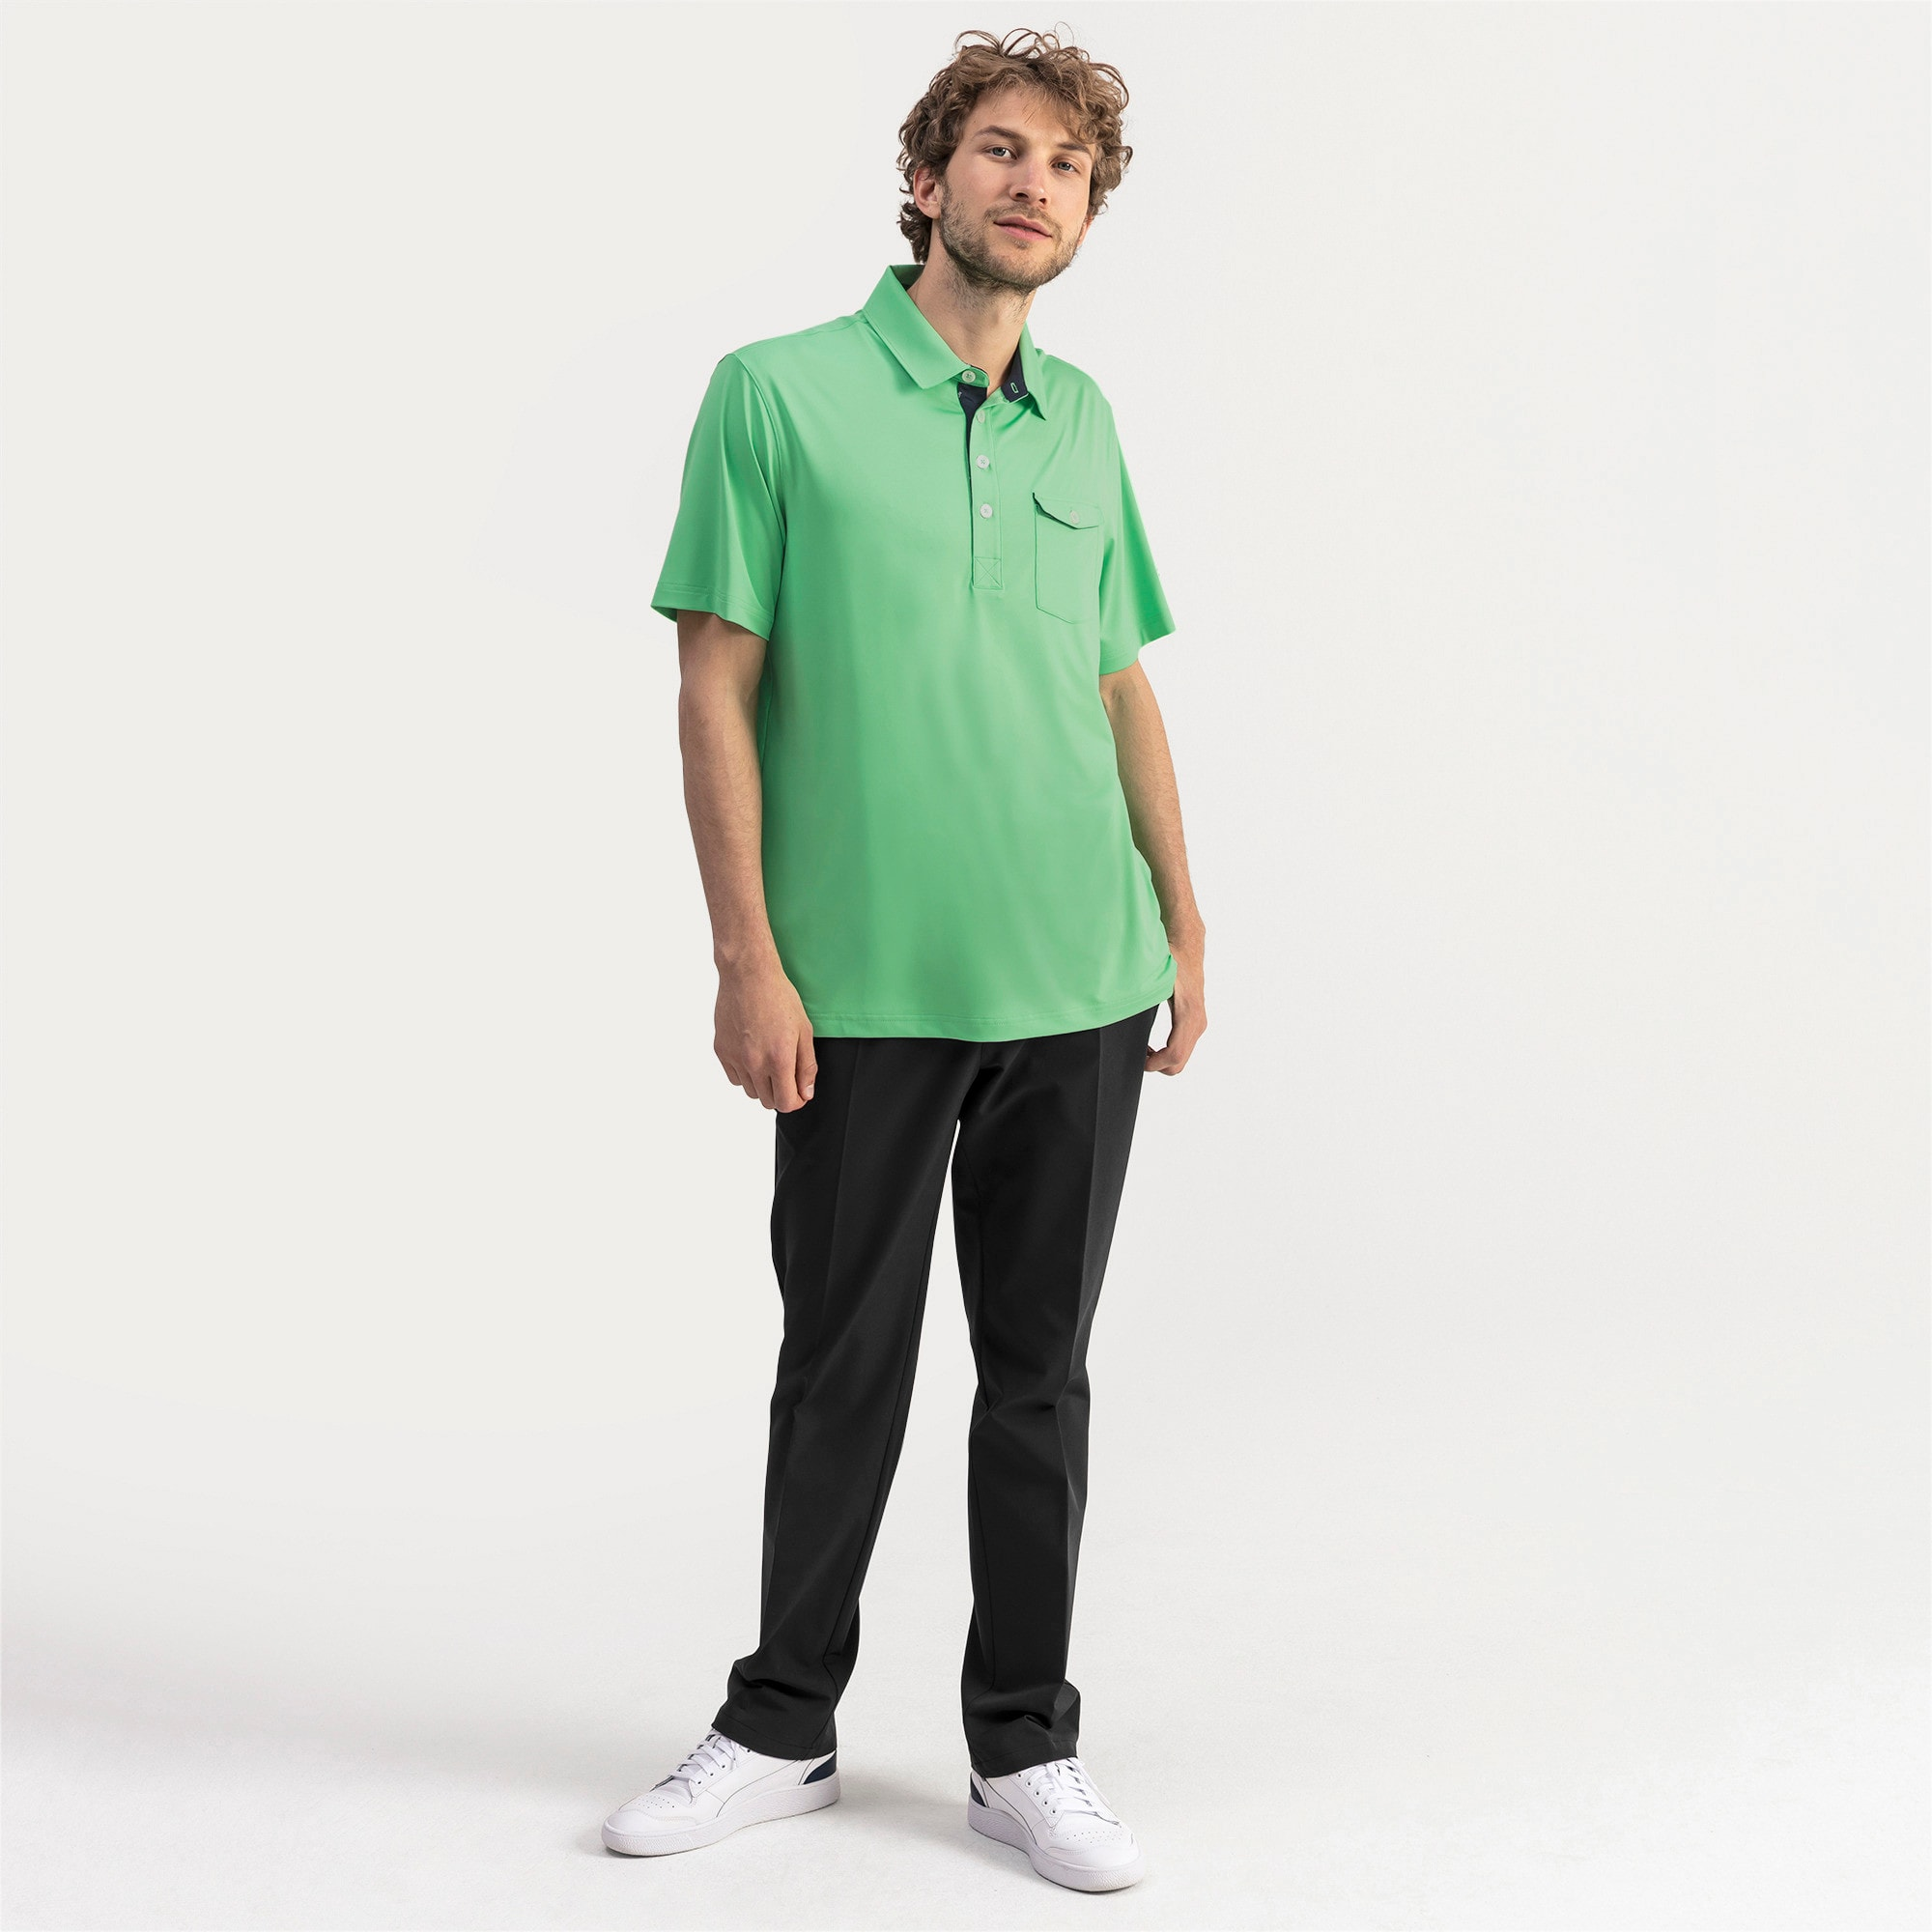 Thumbnail 3 of Donegal Men's Golf Polo, Irish Green, medium